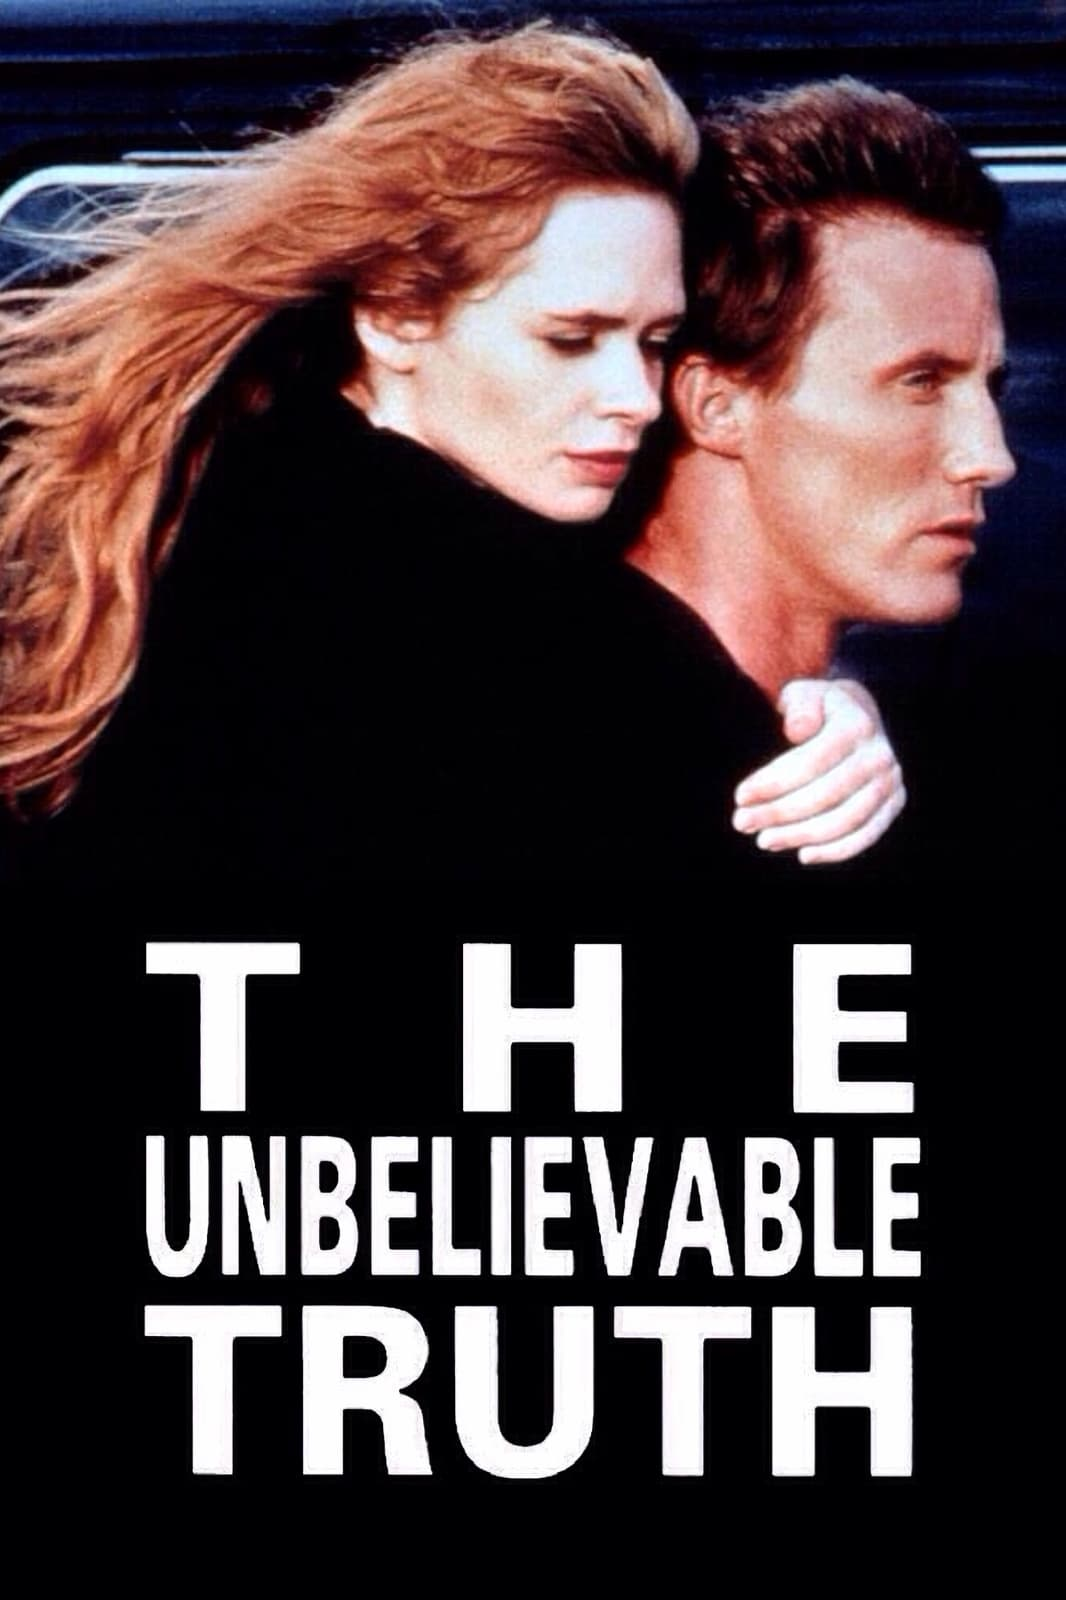 The Unbelievable Truth 1989  Posters  The Movie